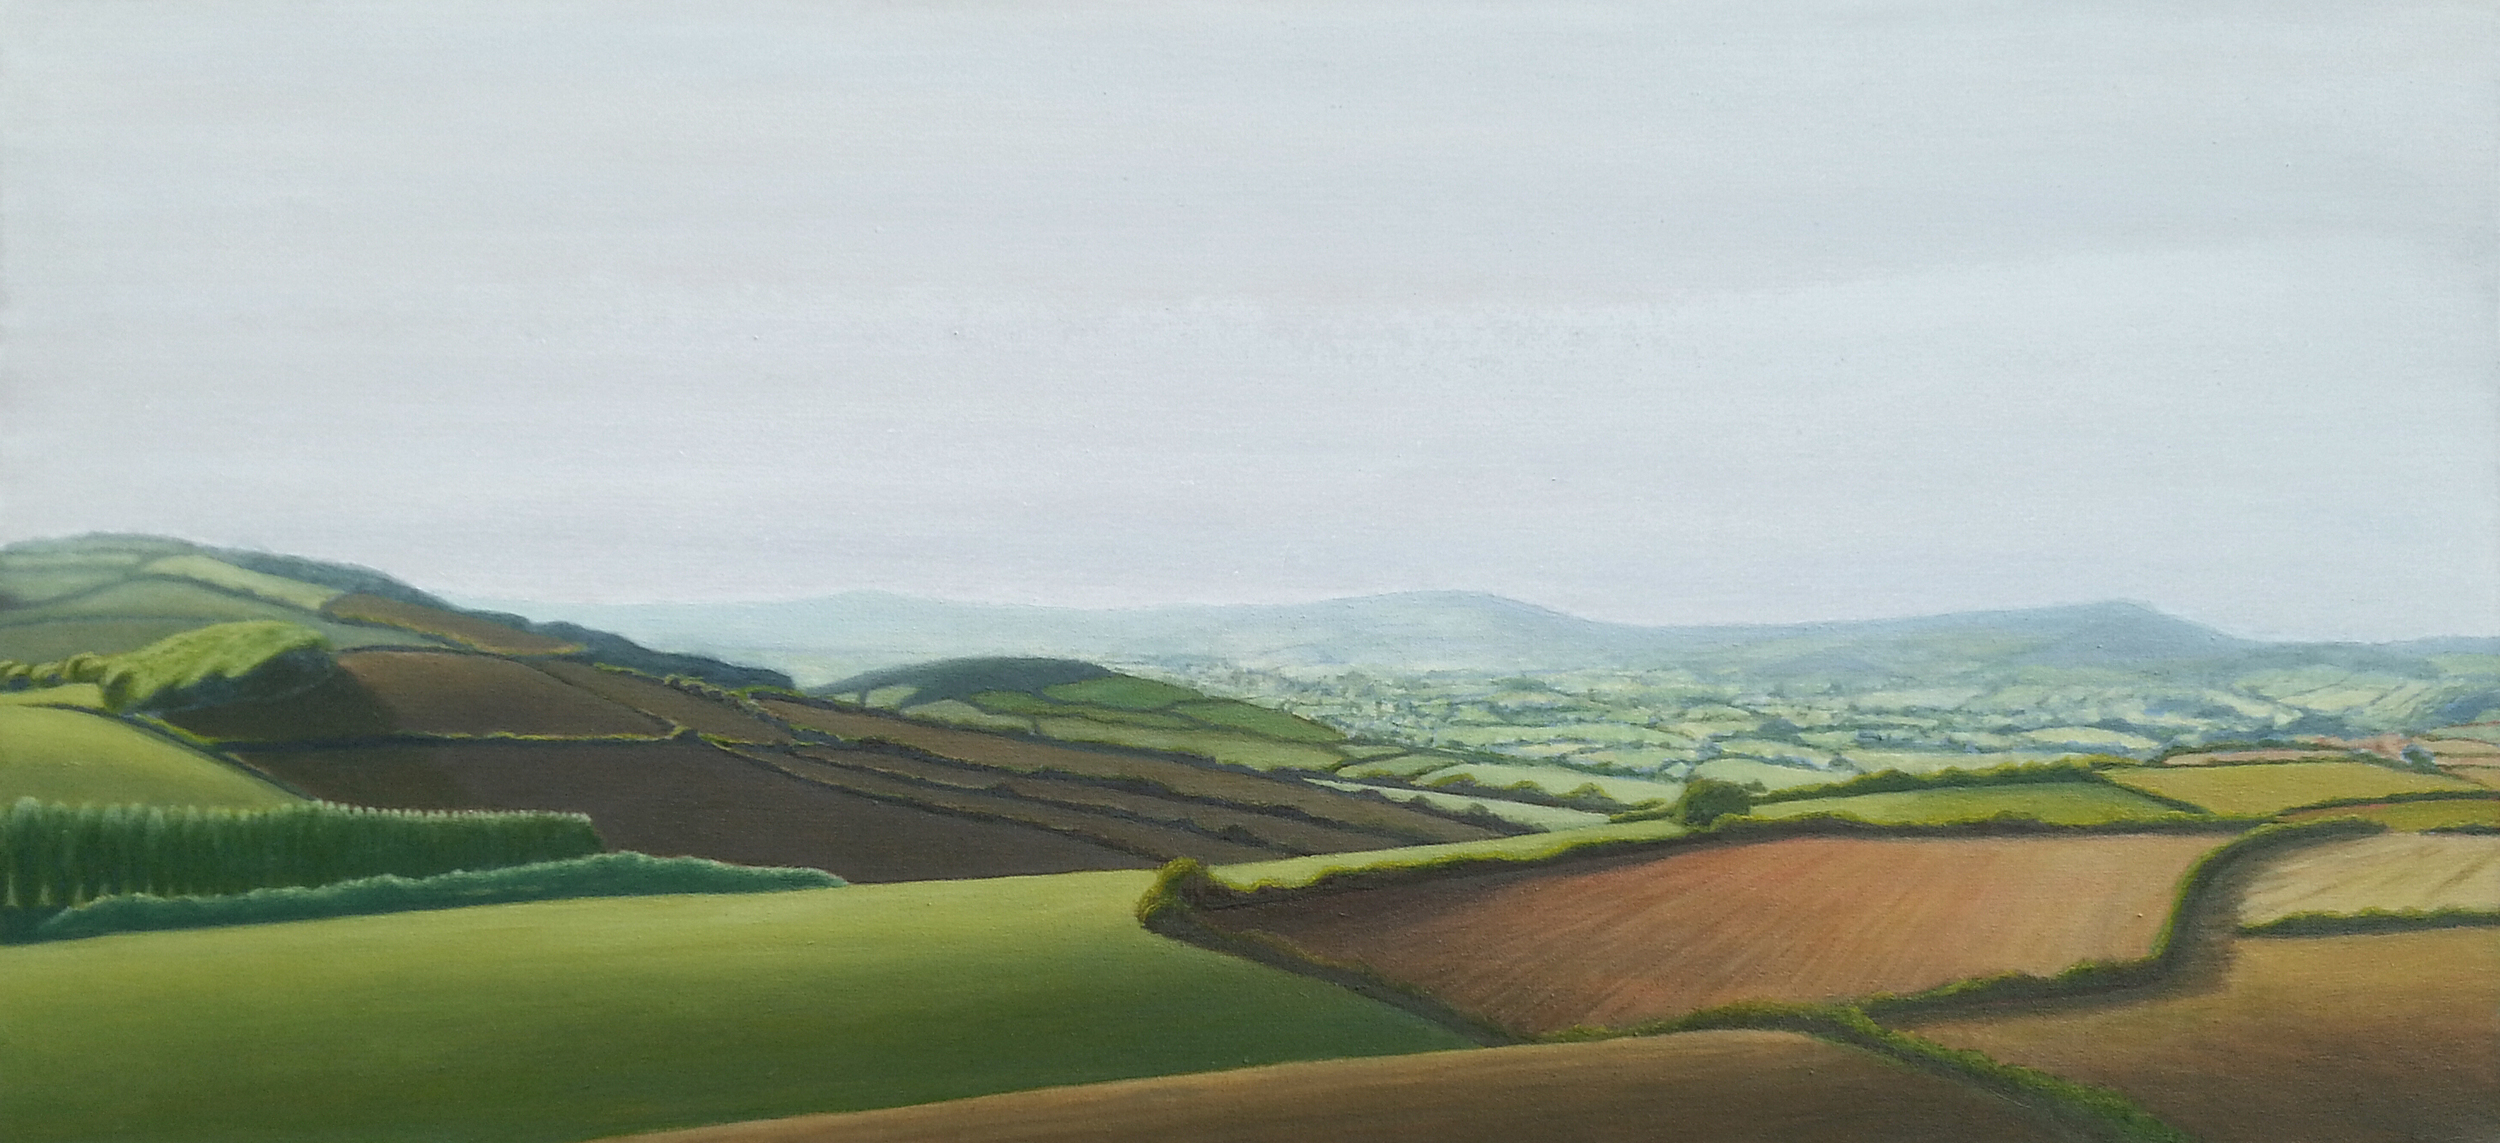 Hazy summers day in the Marshwood Vale, West Dorset